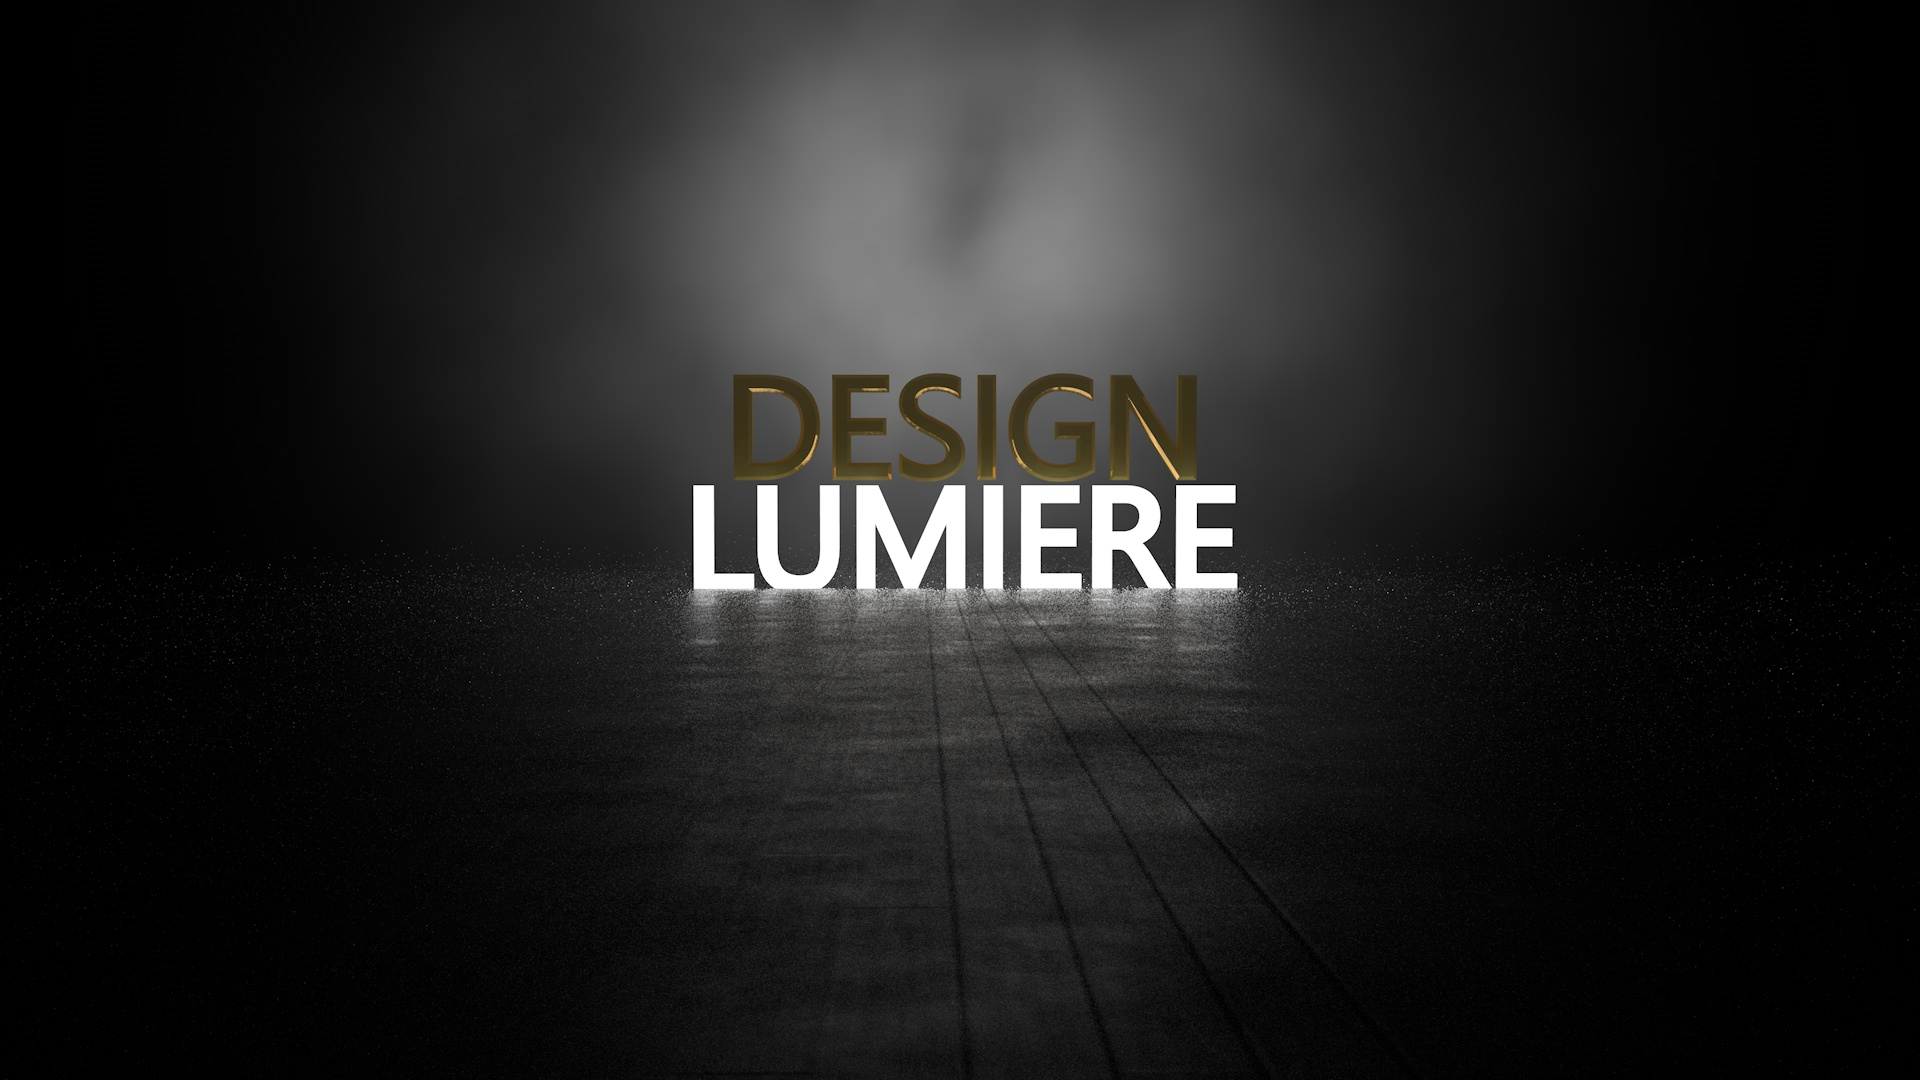 Design Lumiere : Custom made LED Chandeliers, London, UK